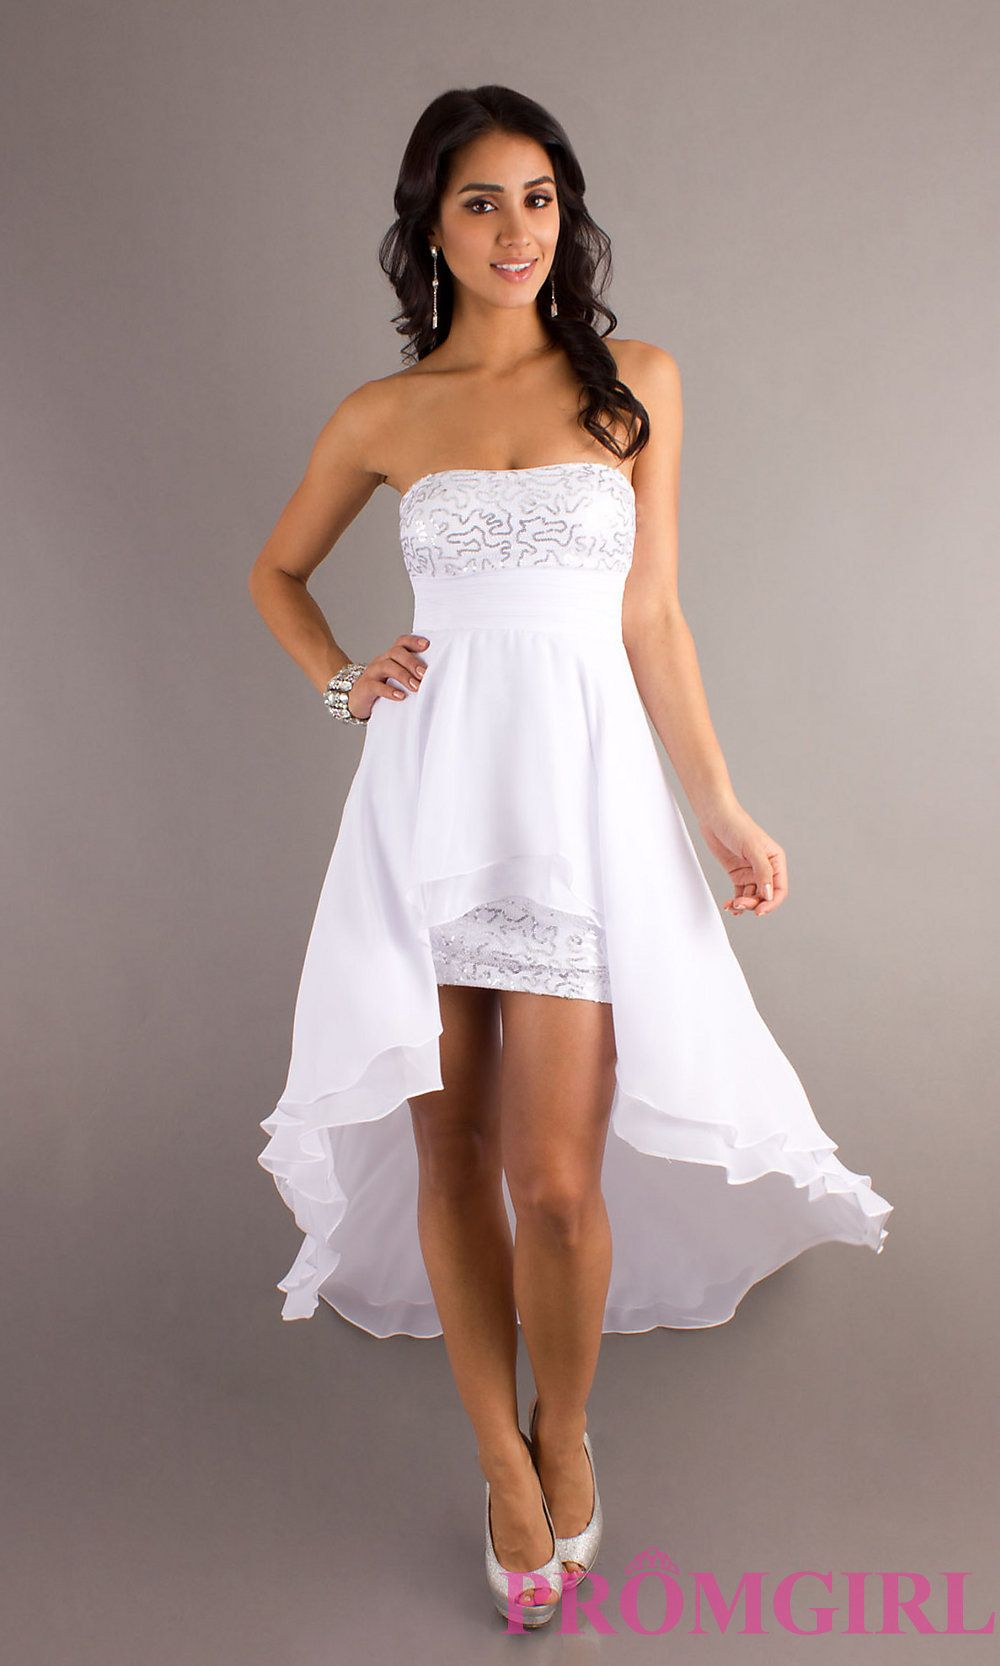 Shop For Strapless Sequined High Low Dress At PromGirl Junior Prom Dresses With Hemlines And Party